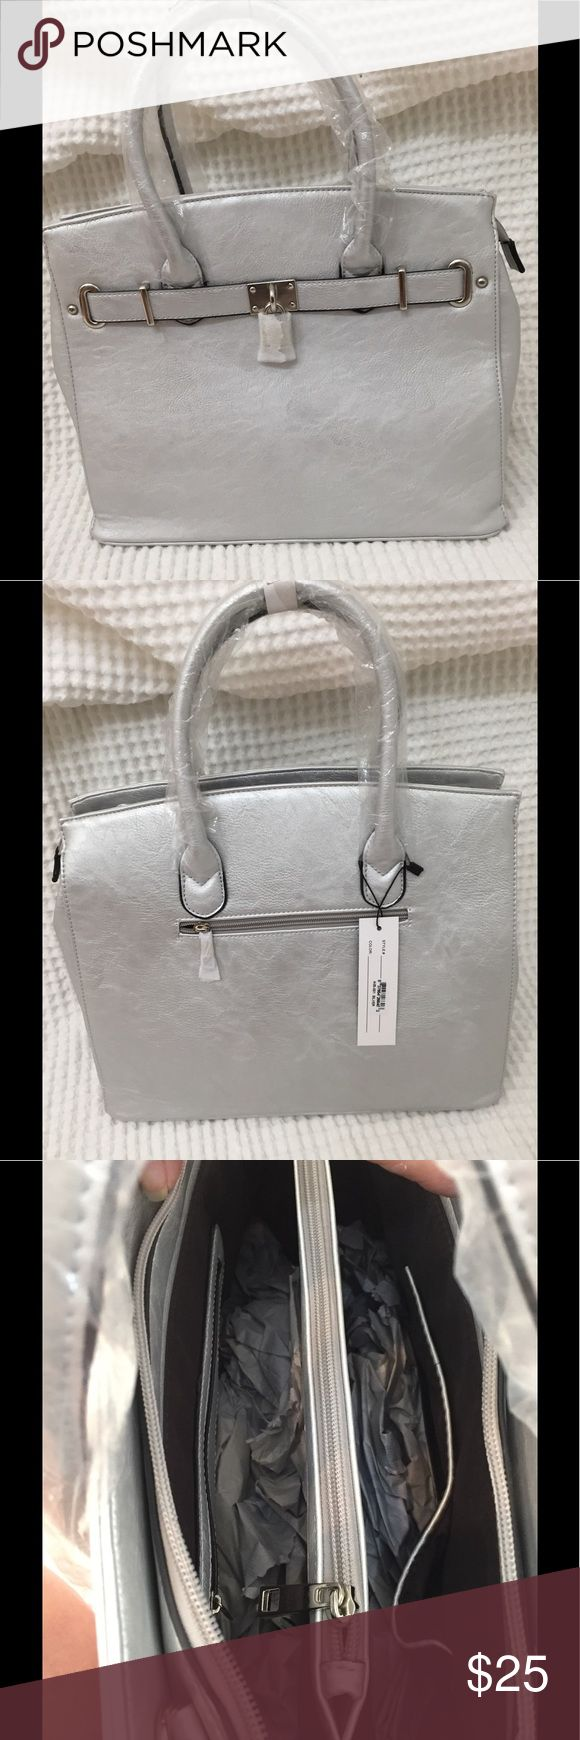 Silver bag New with tags.  Zipper compartment on back of bag.  Inside, there are two sides separated by a zippered middle section. Two open pouches on inner wall to hold phone, etc.  one small zippered compartment on other wall of bag.  Outside is a soft silver finish, with chrome accents and decorate lock on front of bag.  Includes a removable shoulder strap.  Bag is approximately 14 inches wide, 10 inches tall excluding handles, 6 inches wide at base of bag. sociology Bags Totes